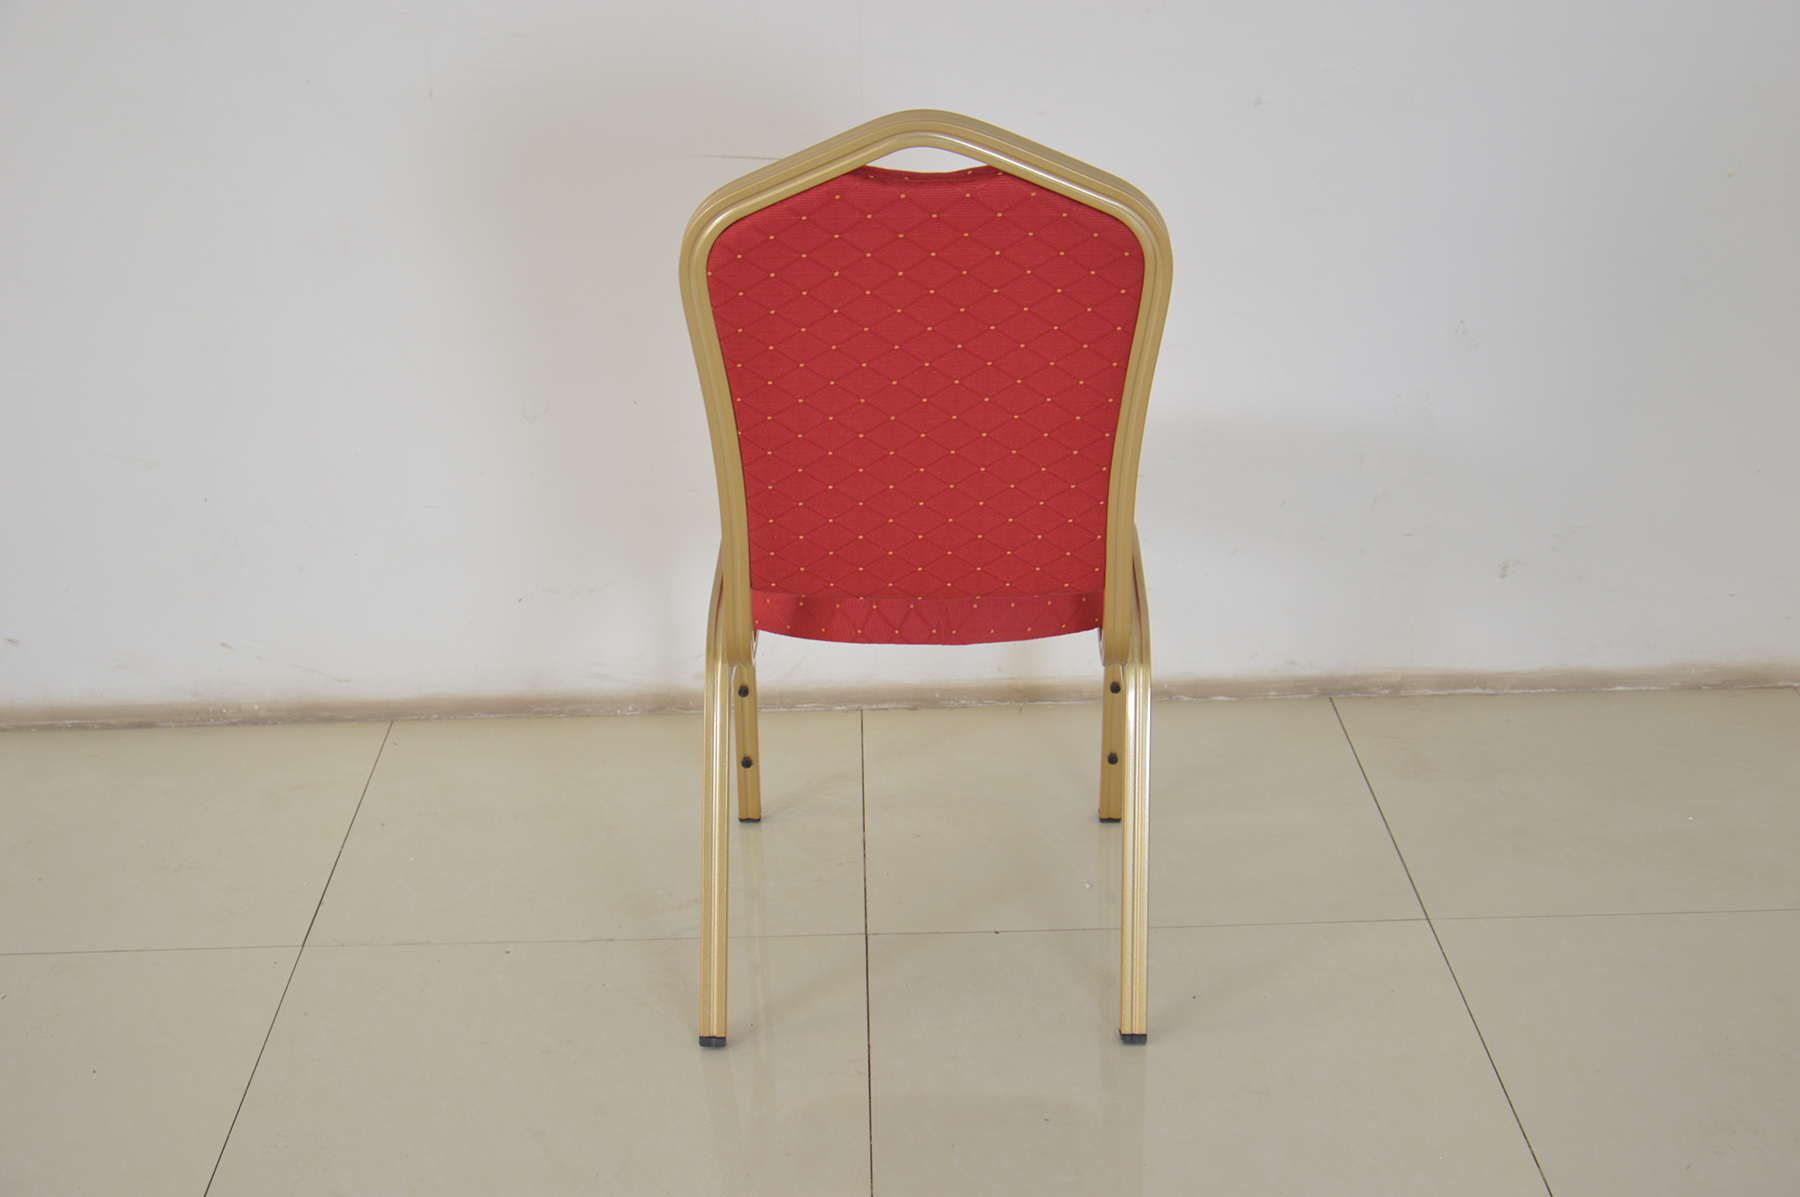 Cheap church wedding banquet chair / used hotel furniture for sale